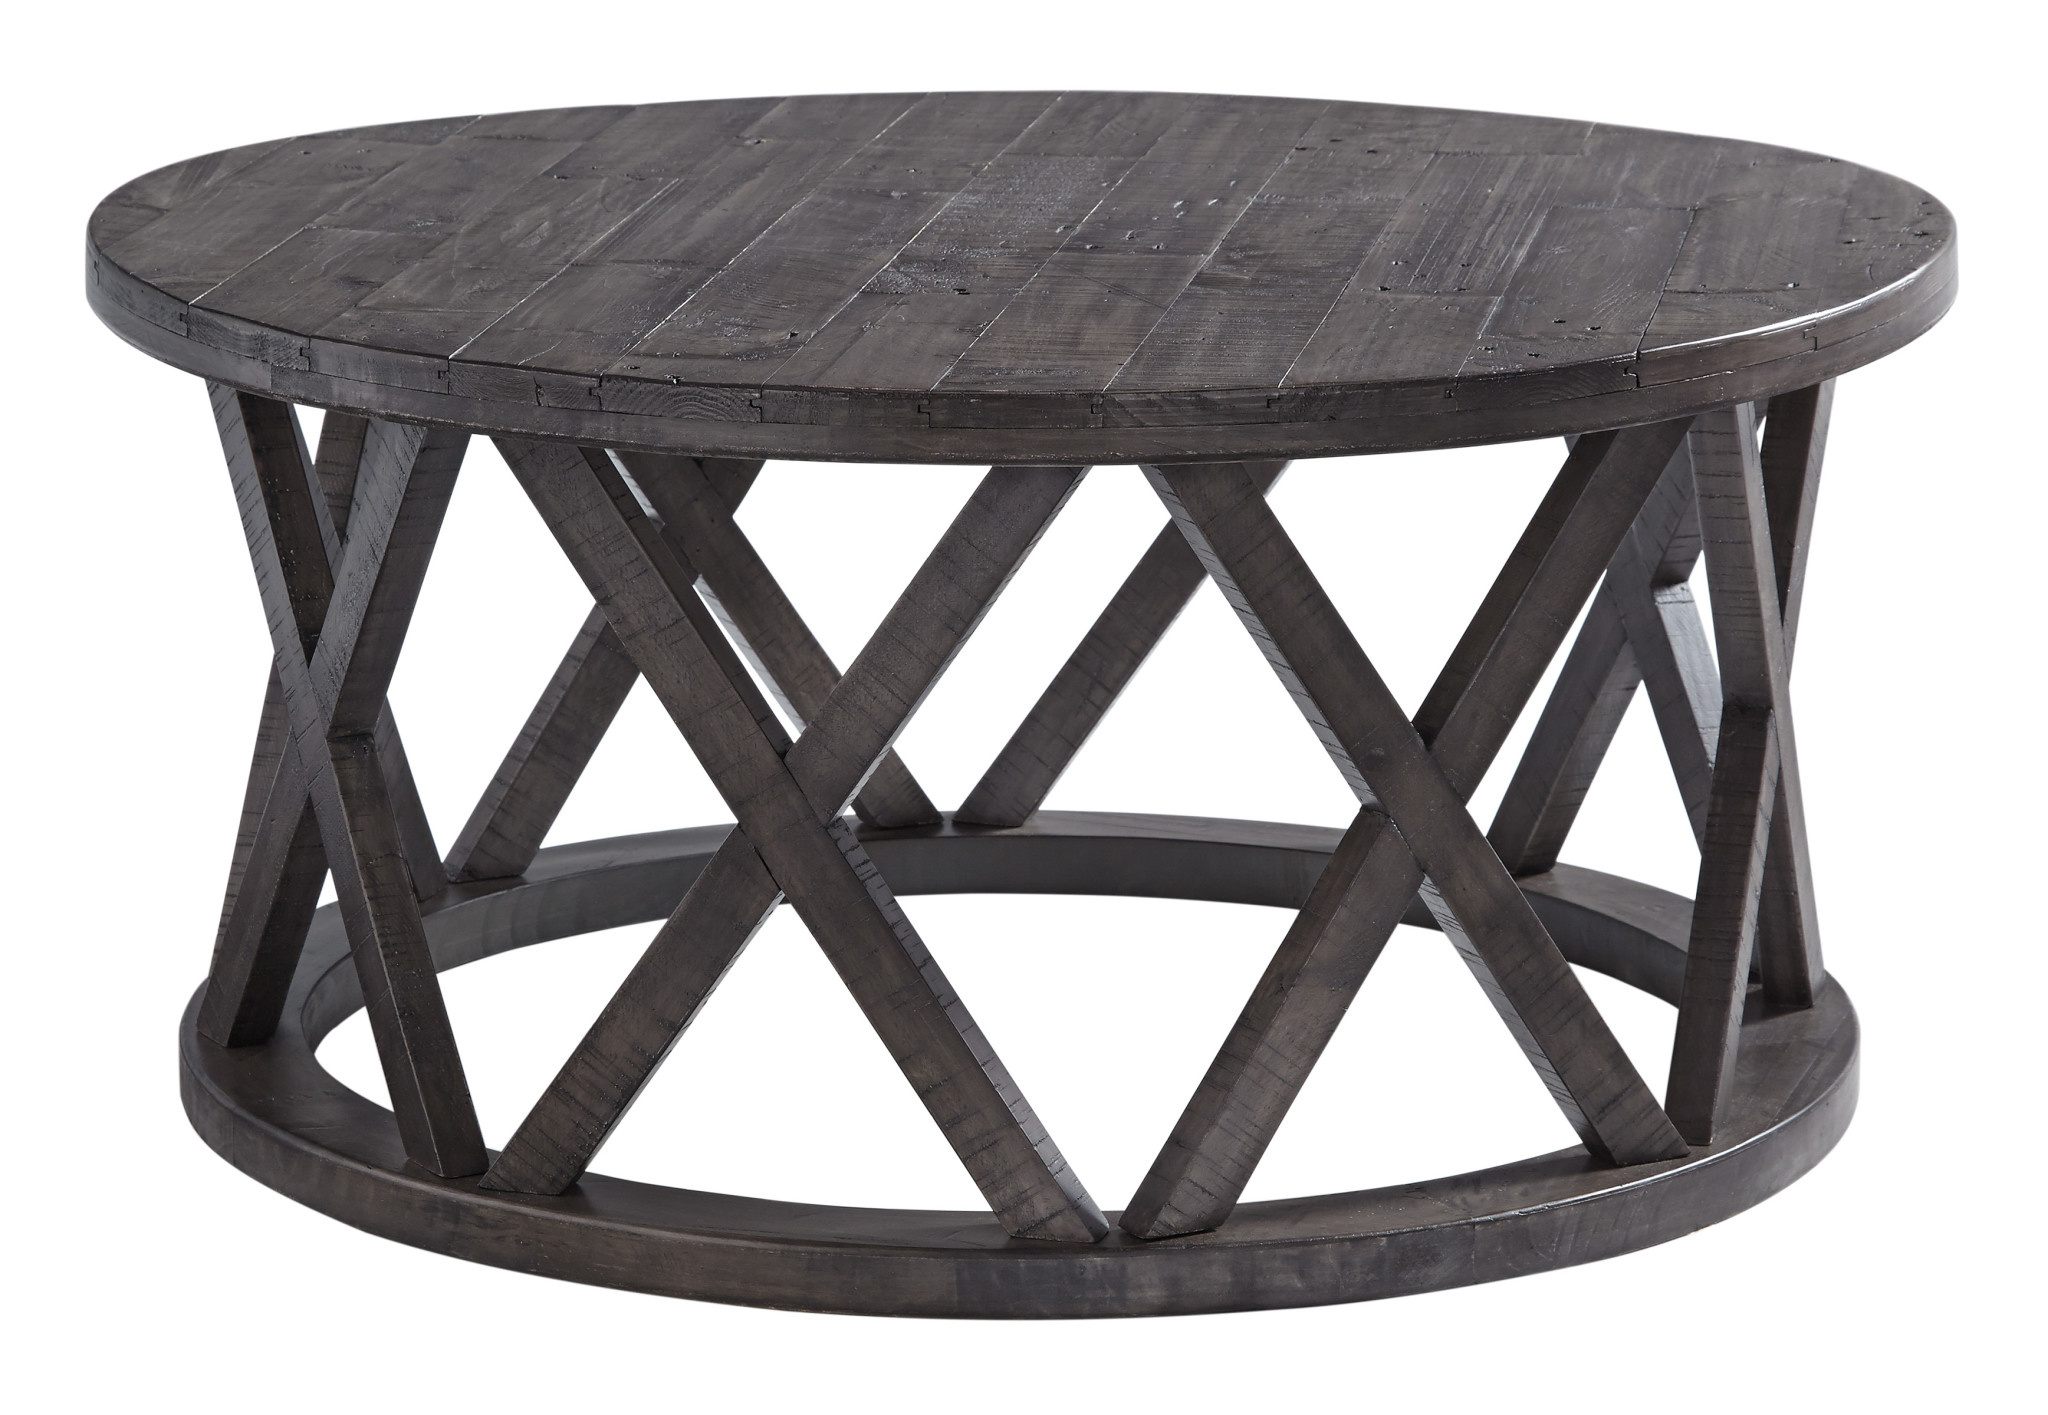 Signature Design Round Cocktail Table- Sharzane- Grayish Brown T711-8